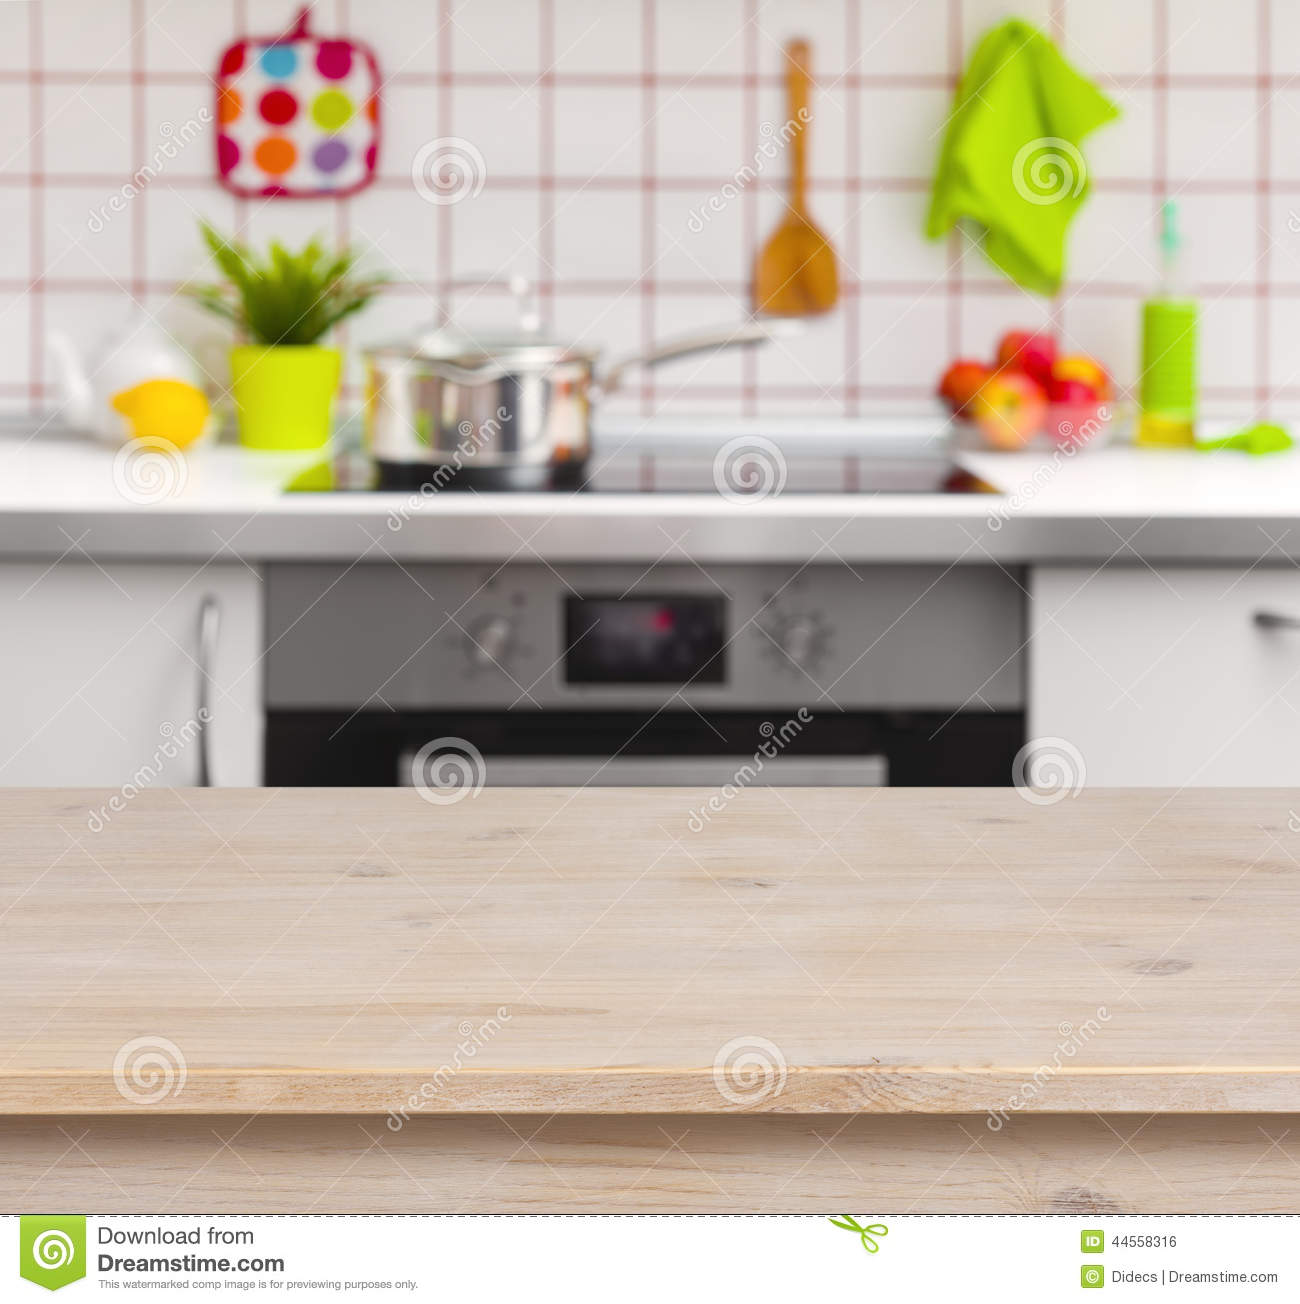 Wooden Table On Blurred Kitchen Bench Background Stock  : wooden table blurred kitchen bench background 44558316 from www.dreamstime.com size 1300 x 1304 jpeg 123kB